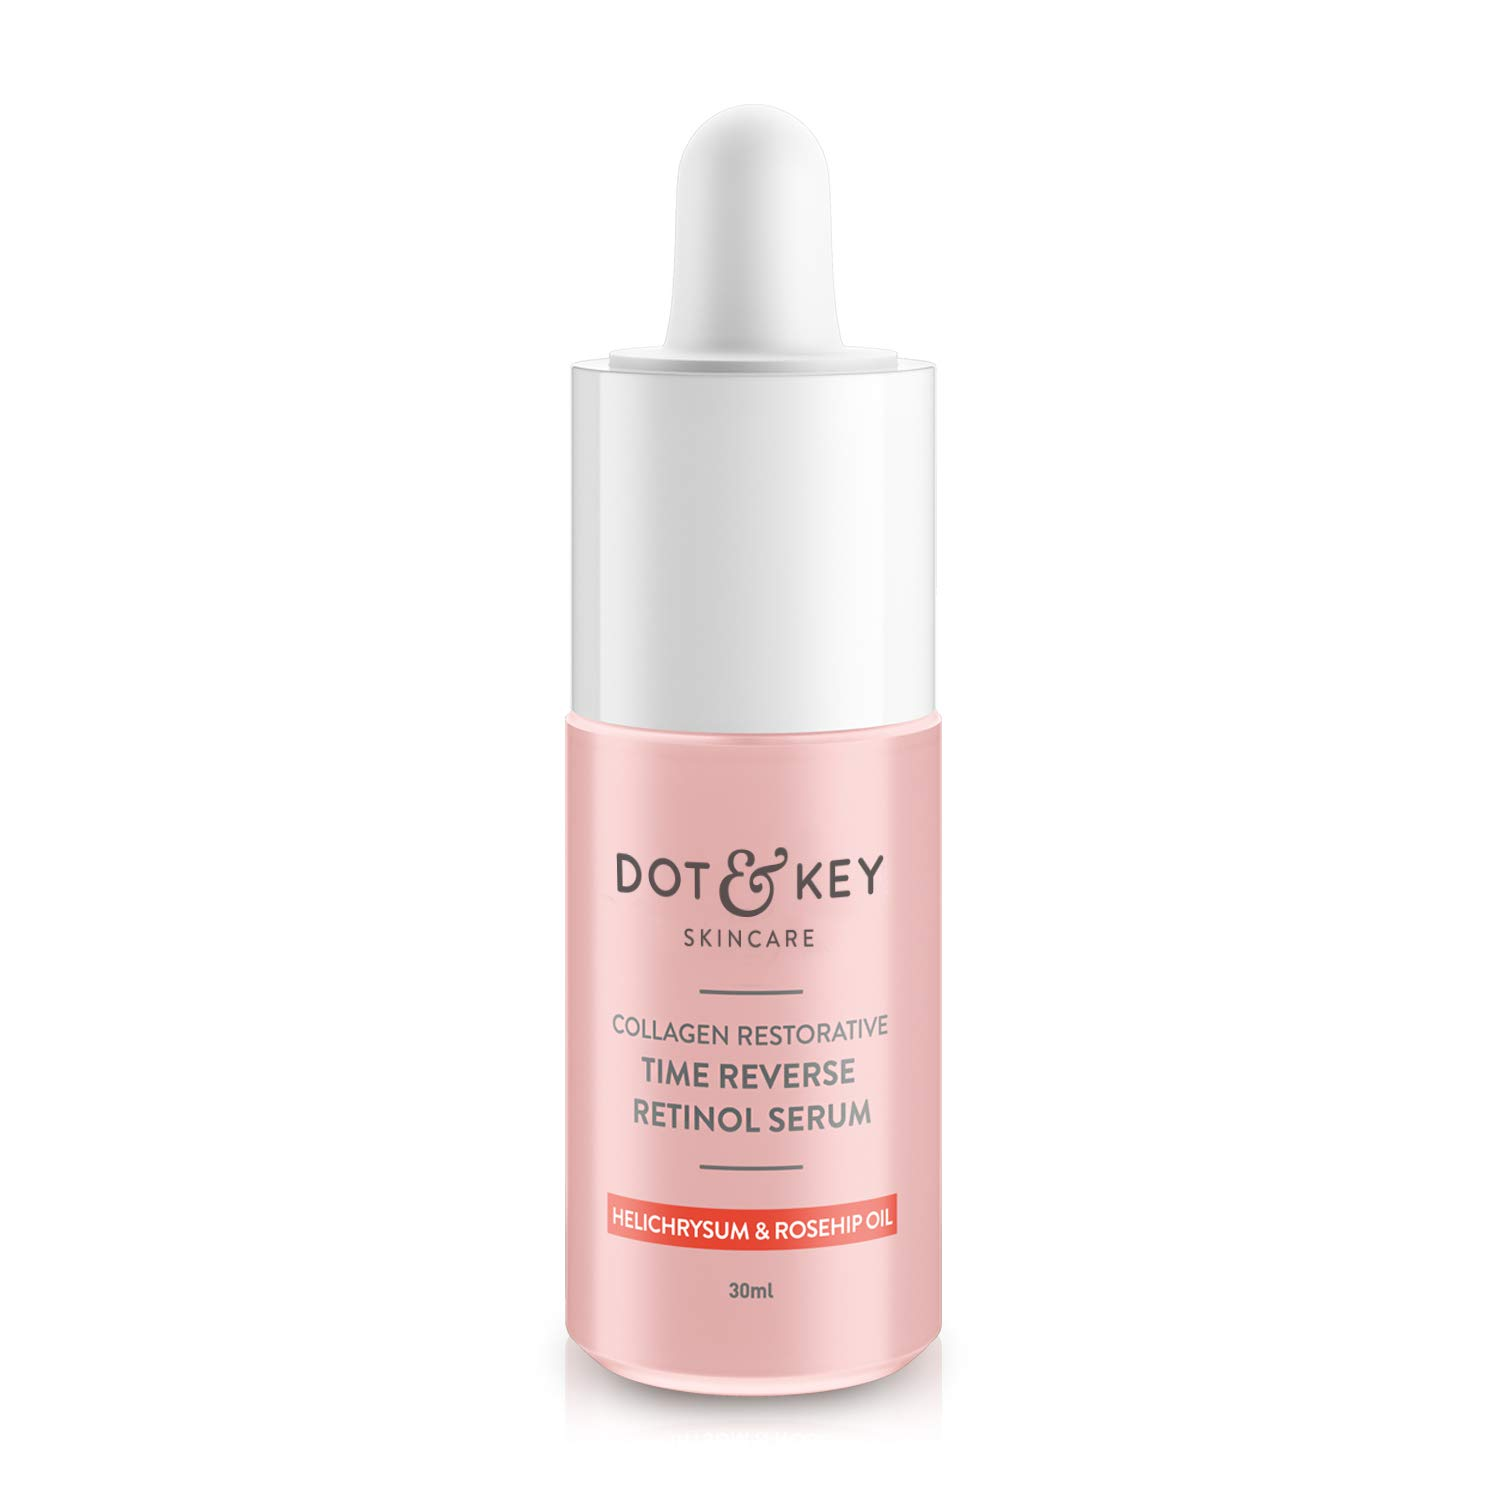 Dot & Key Collagen Restorative Time Reverse Retinol Serum 30ml, anti ageing serum with collagen peptide, rosehip oil and…